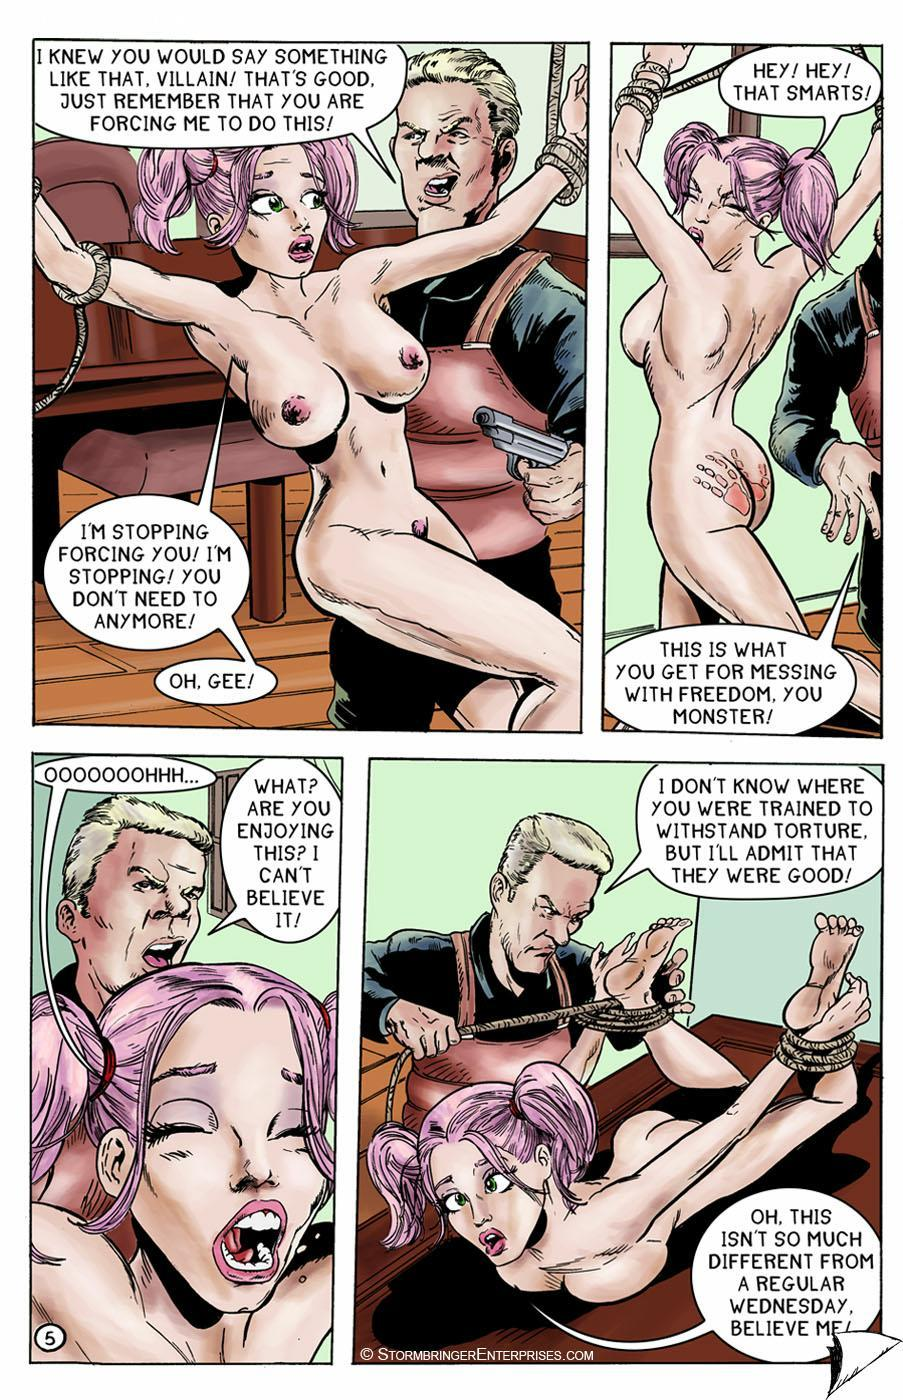 Erotic Adventures of Candice 01-18107 free sex comic